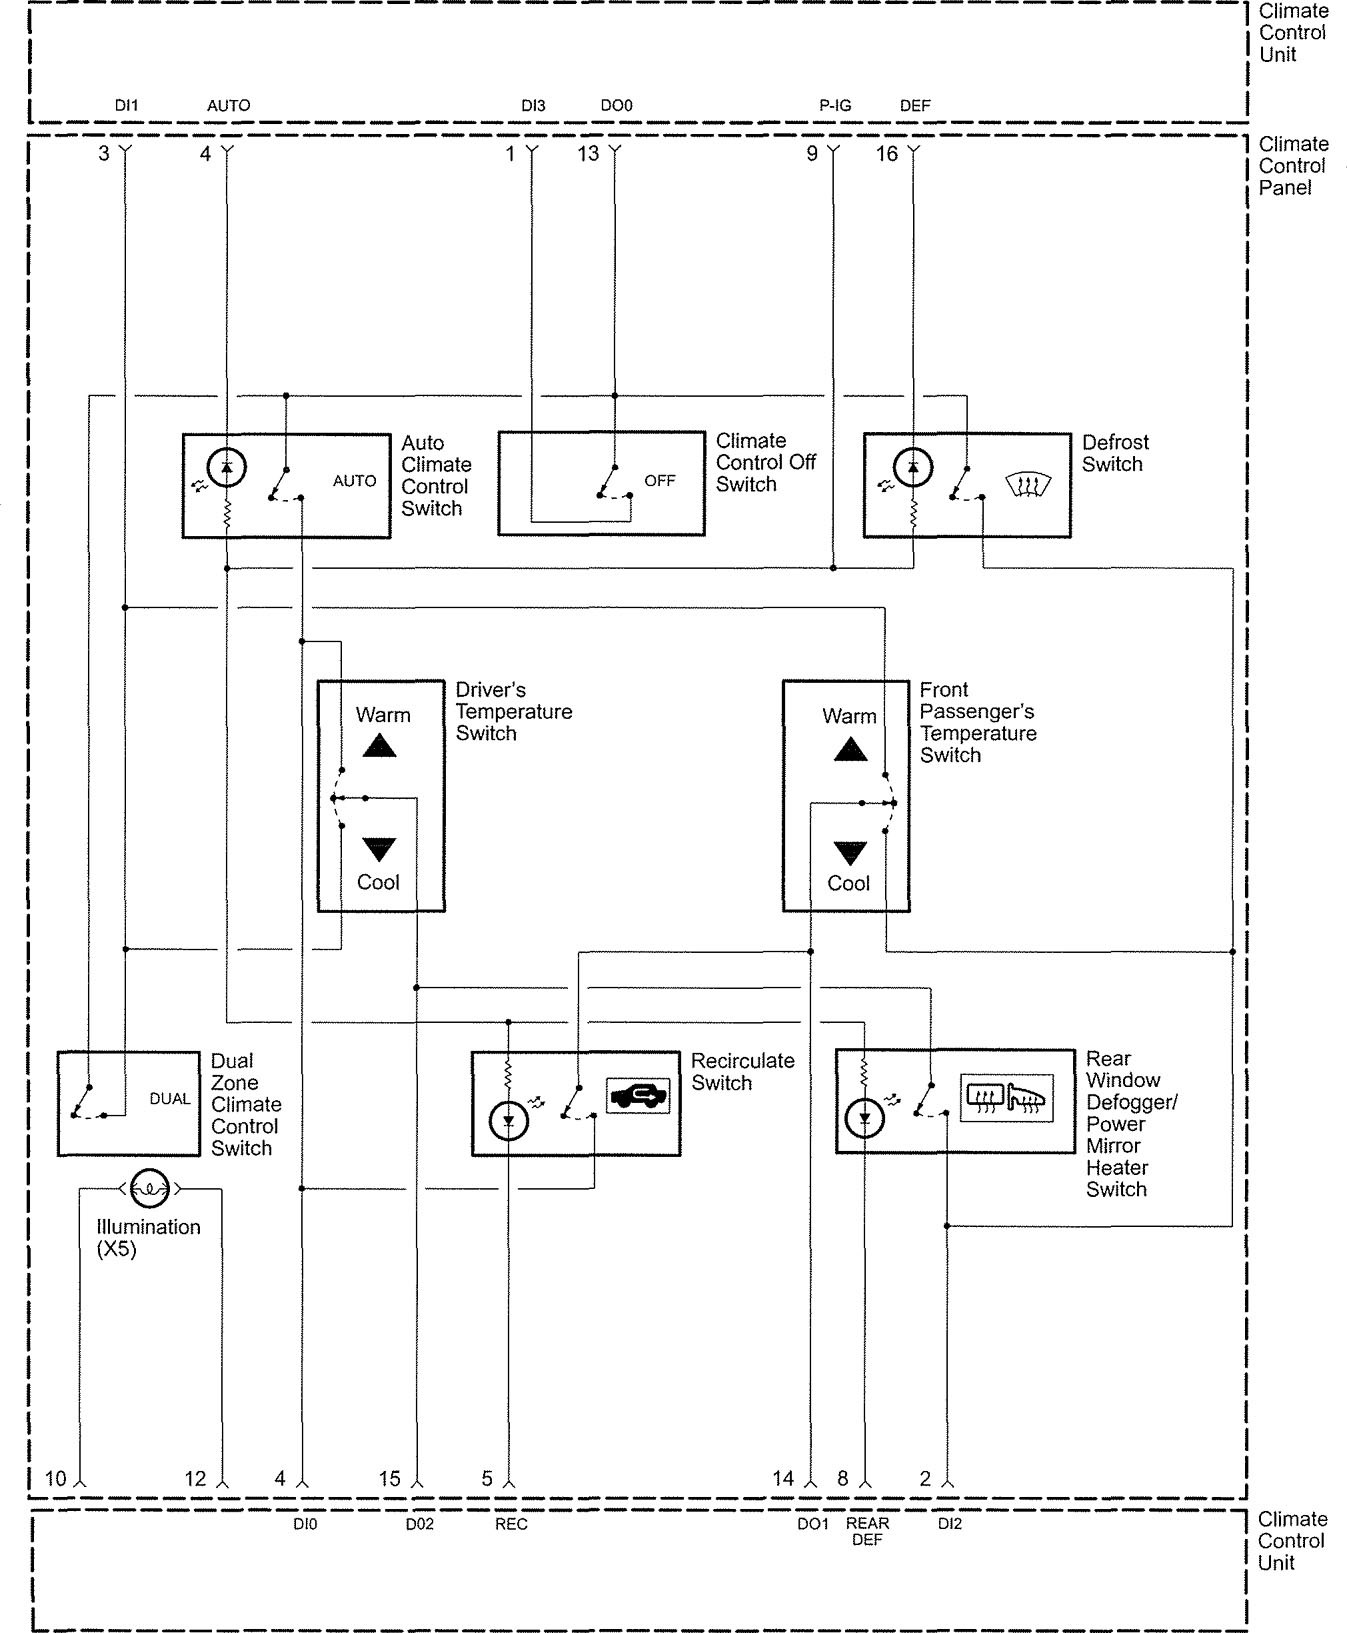 acura rl wiring diagram hvac controls v1 3 2005 acura rl (2005) wiring diagrams hvac controls carknowledge hvac control panel wiring diagrams at honlapkeszites.co